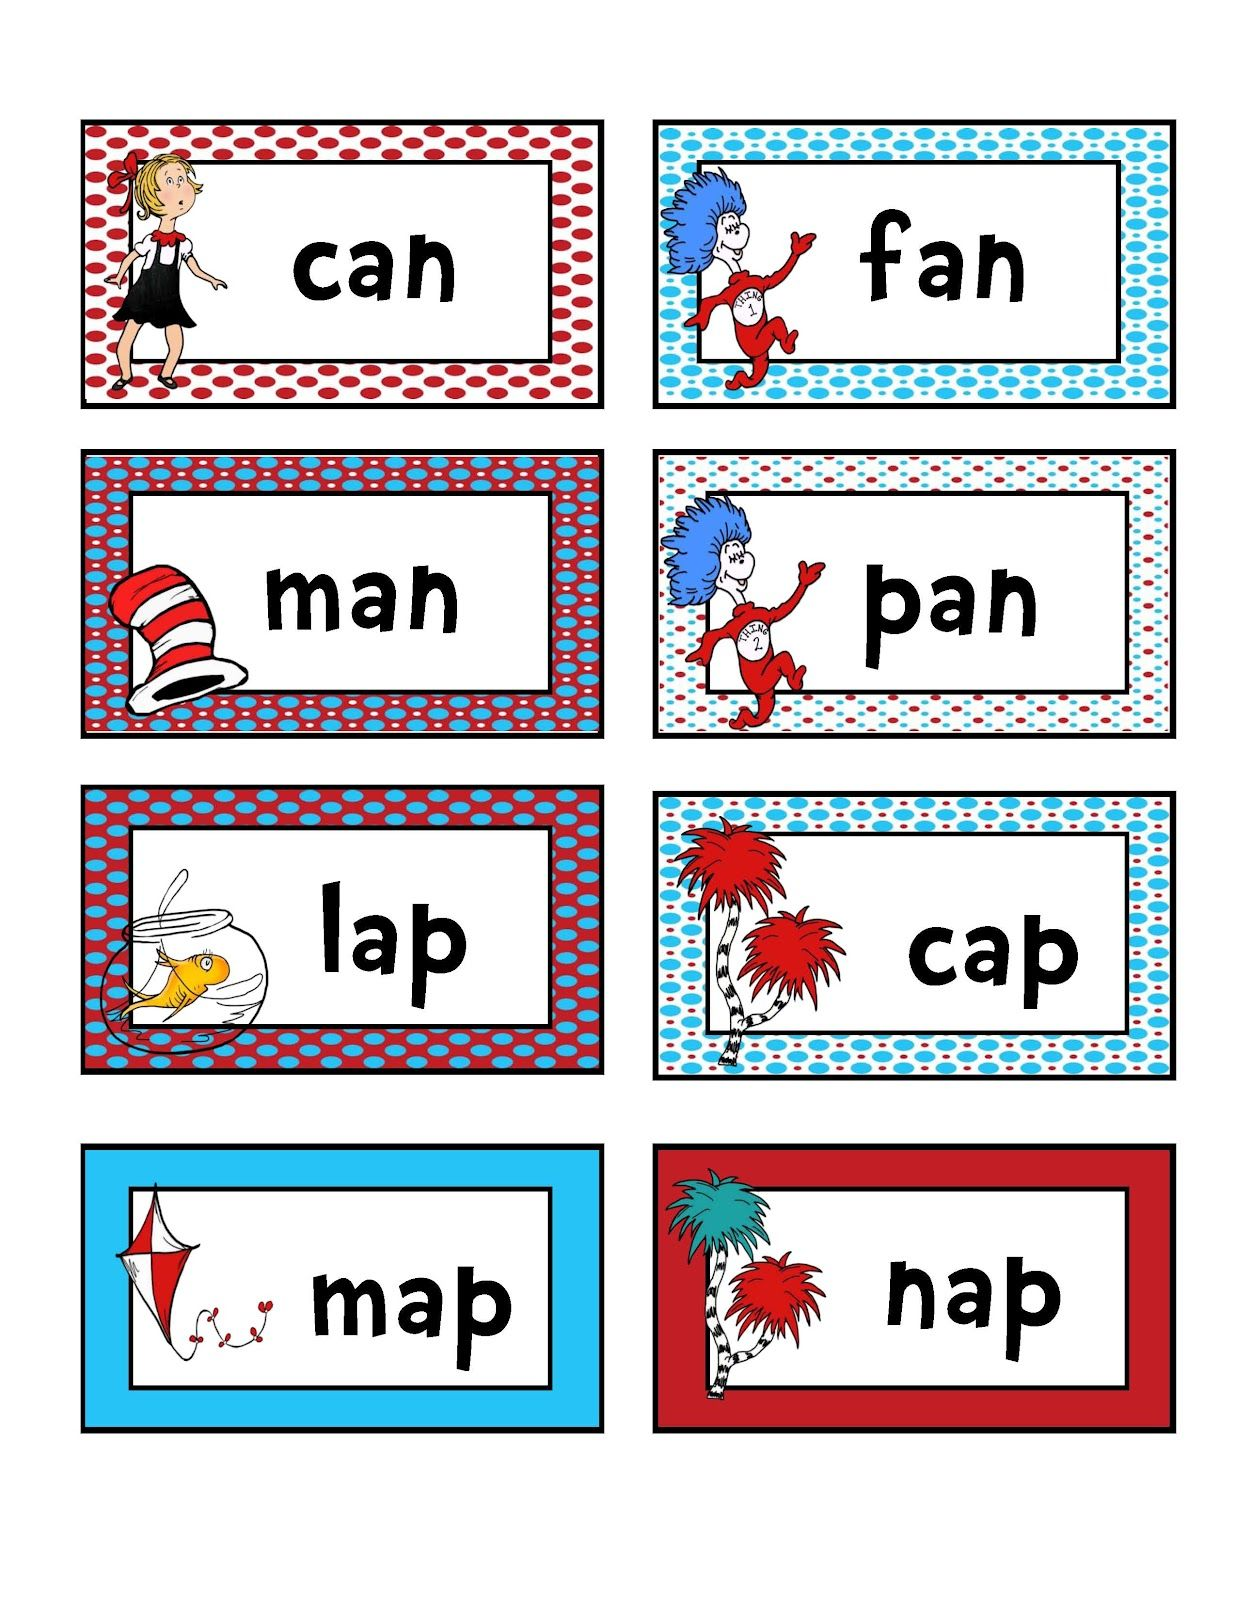 Worksheets Rhymes Words Examples preschool printables rhyming and matching reading game dr seuss word set my son loves singing rythym is a lot of fun for him s just makes